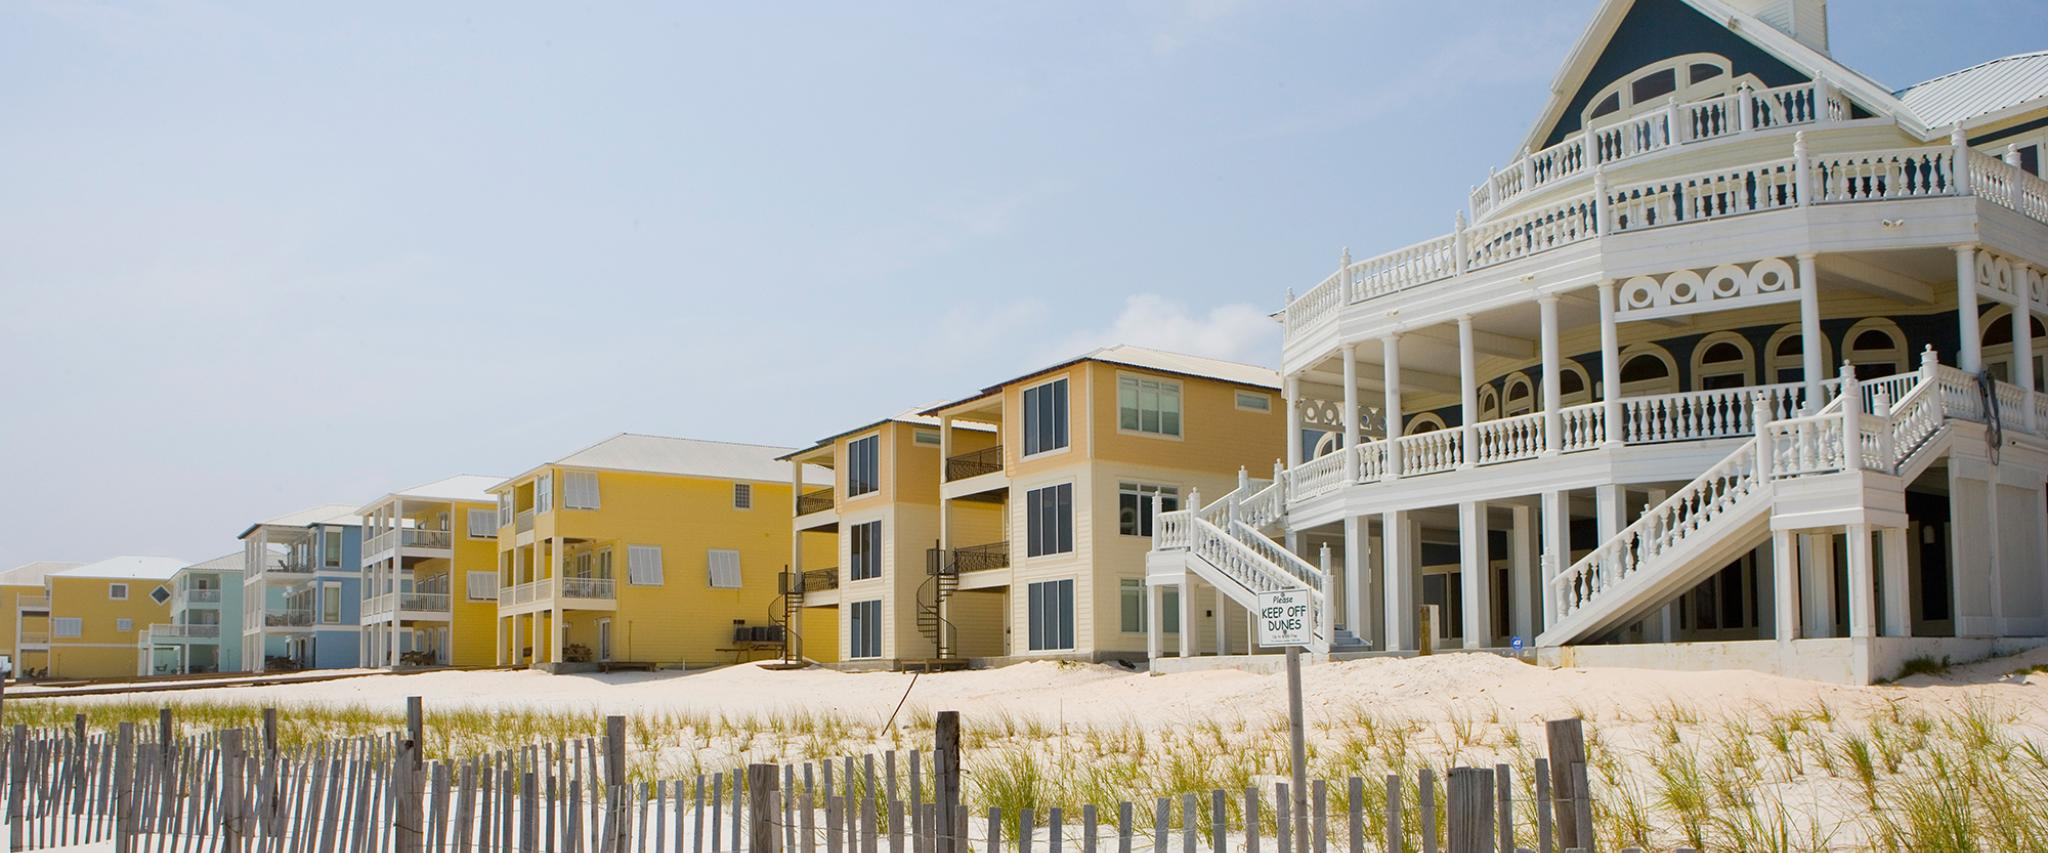 4 bedroom houses in orange beach al modern green house 4 bedroom condos in orange beach al